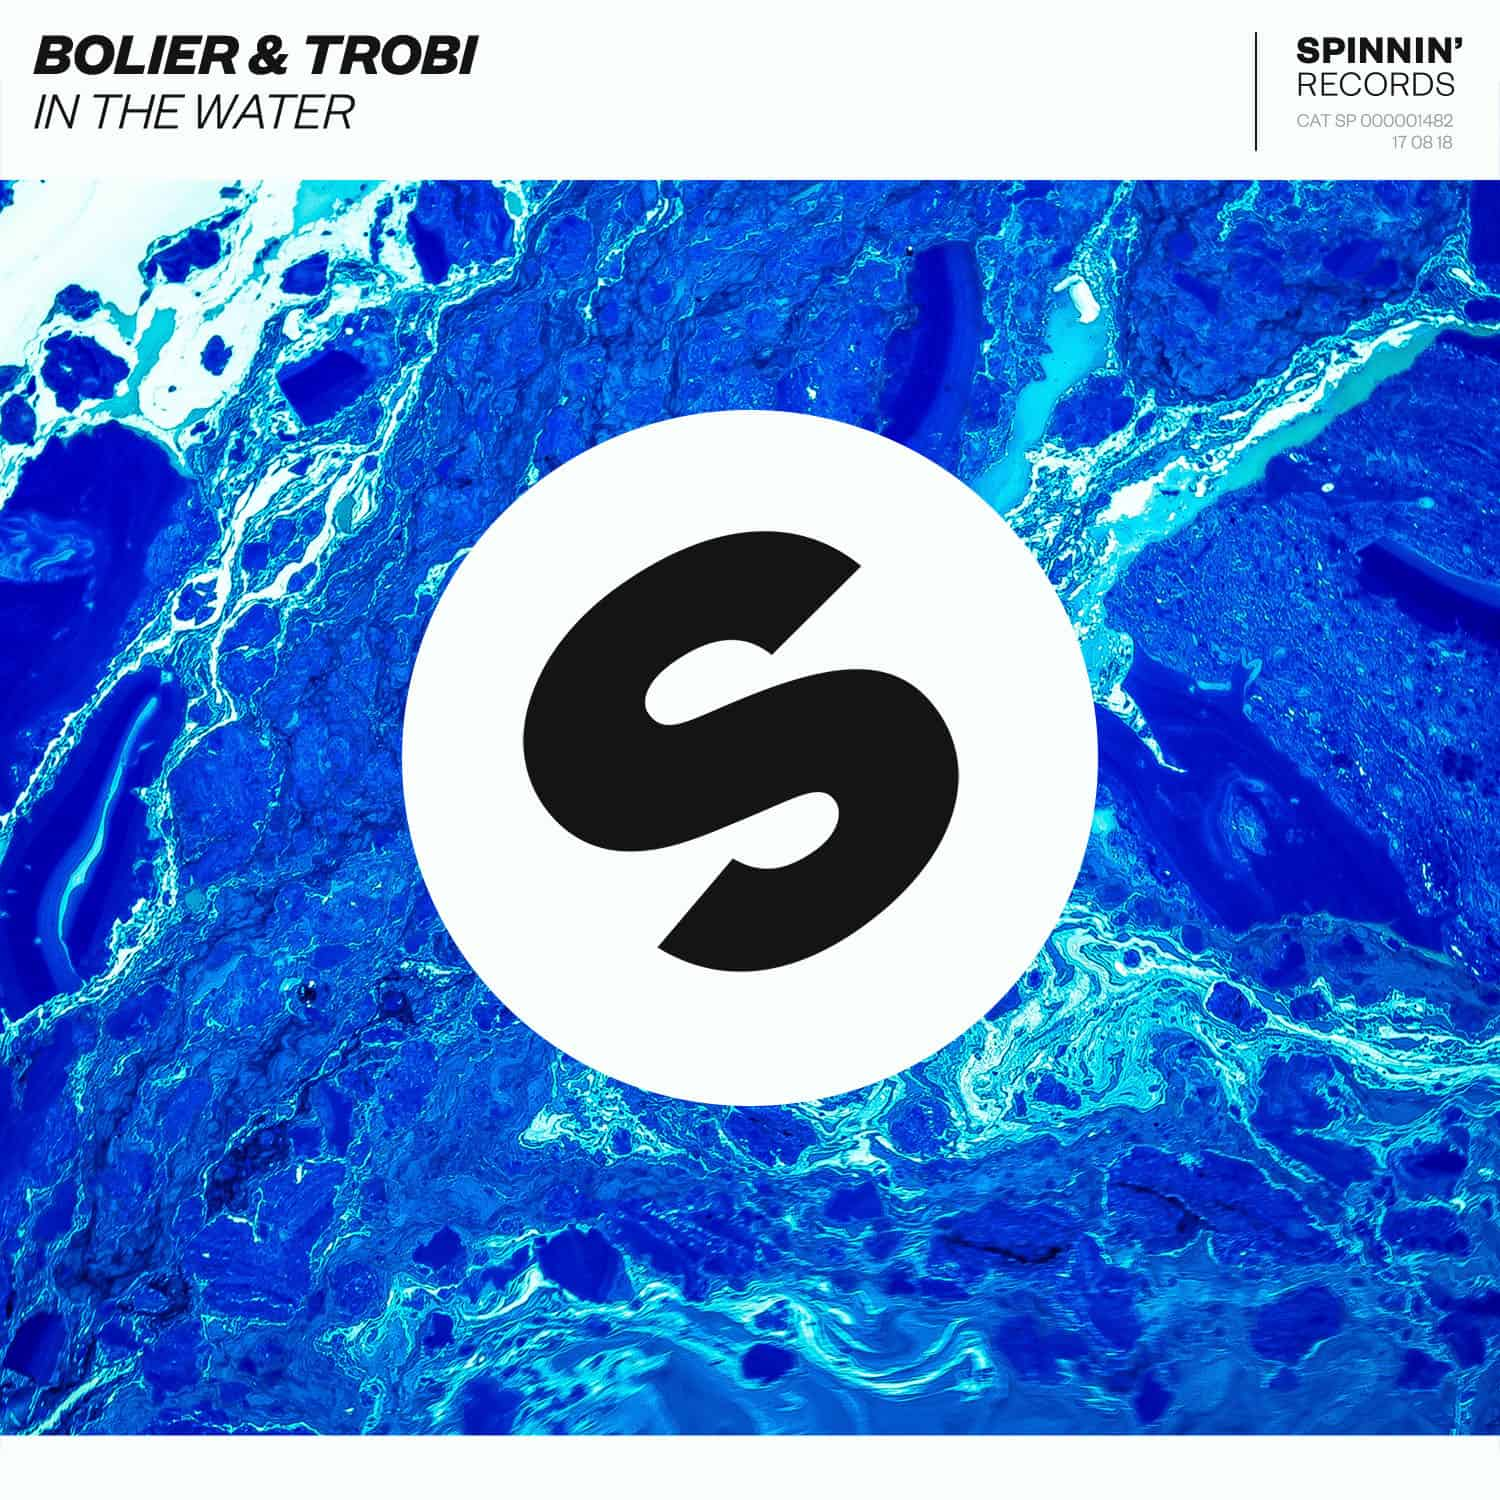 Bolier & Trobi take a dive 'In The Water'